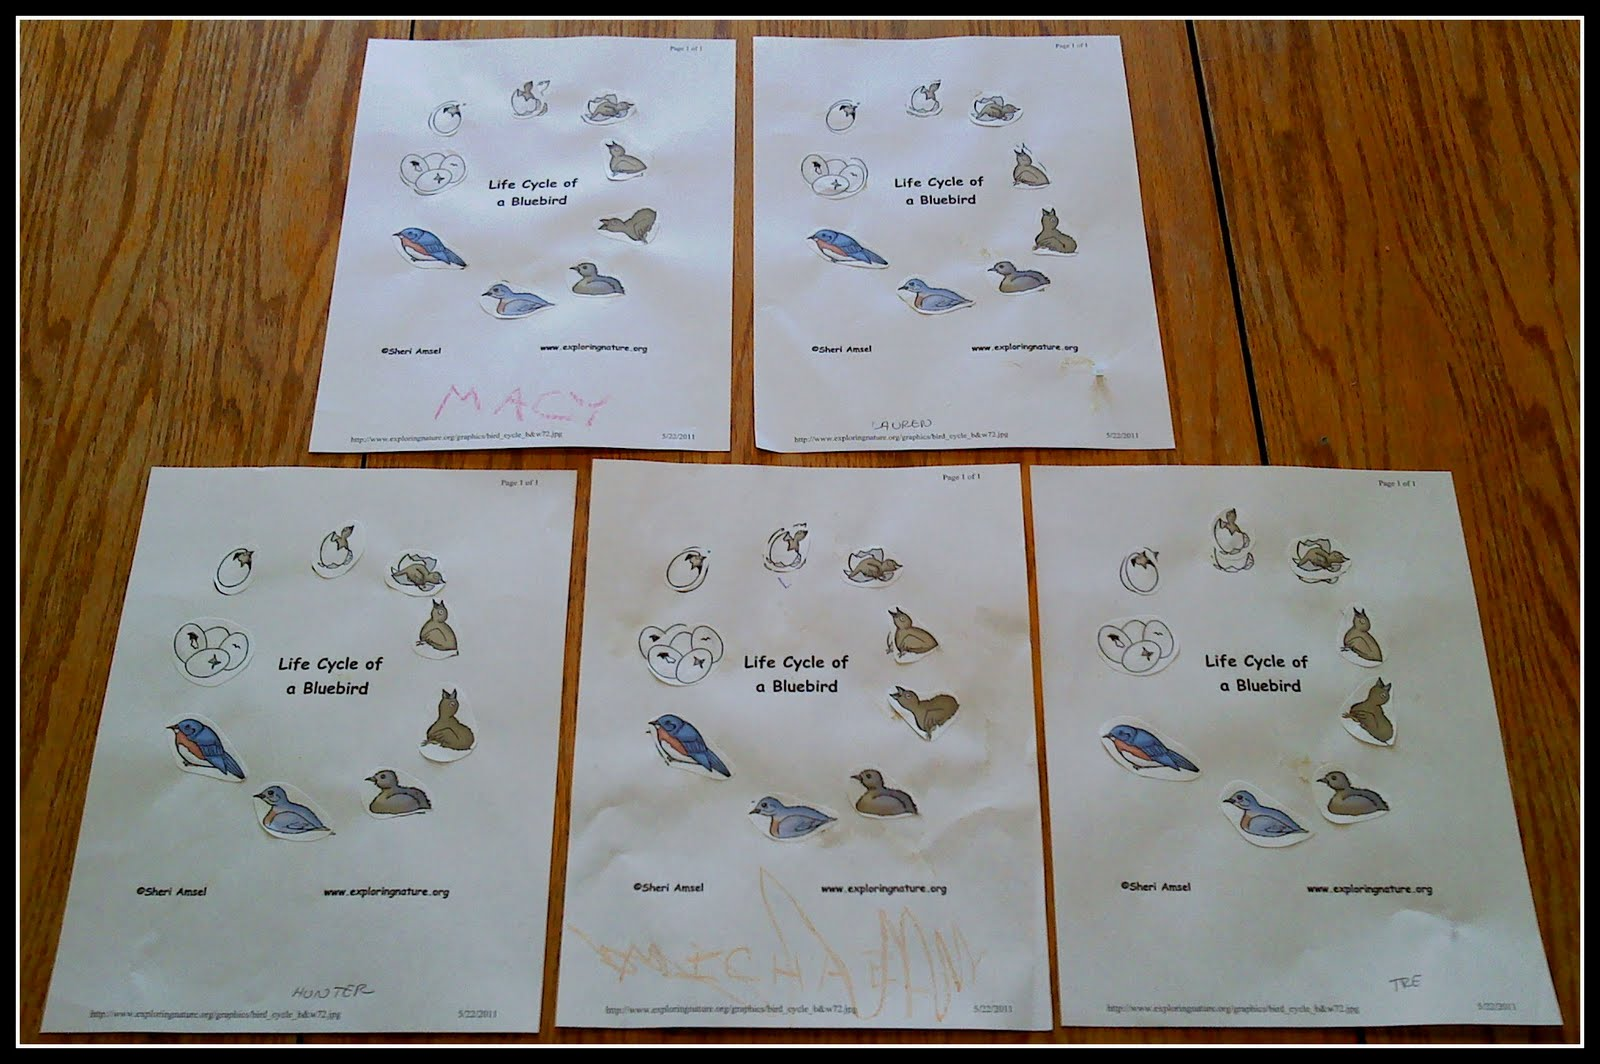 The Walnut Acre Chronicles Bird Life Cycle Coloring Page